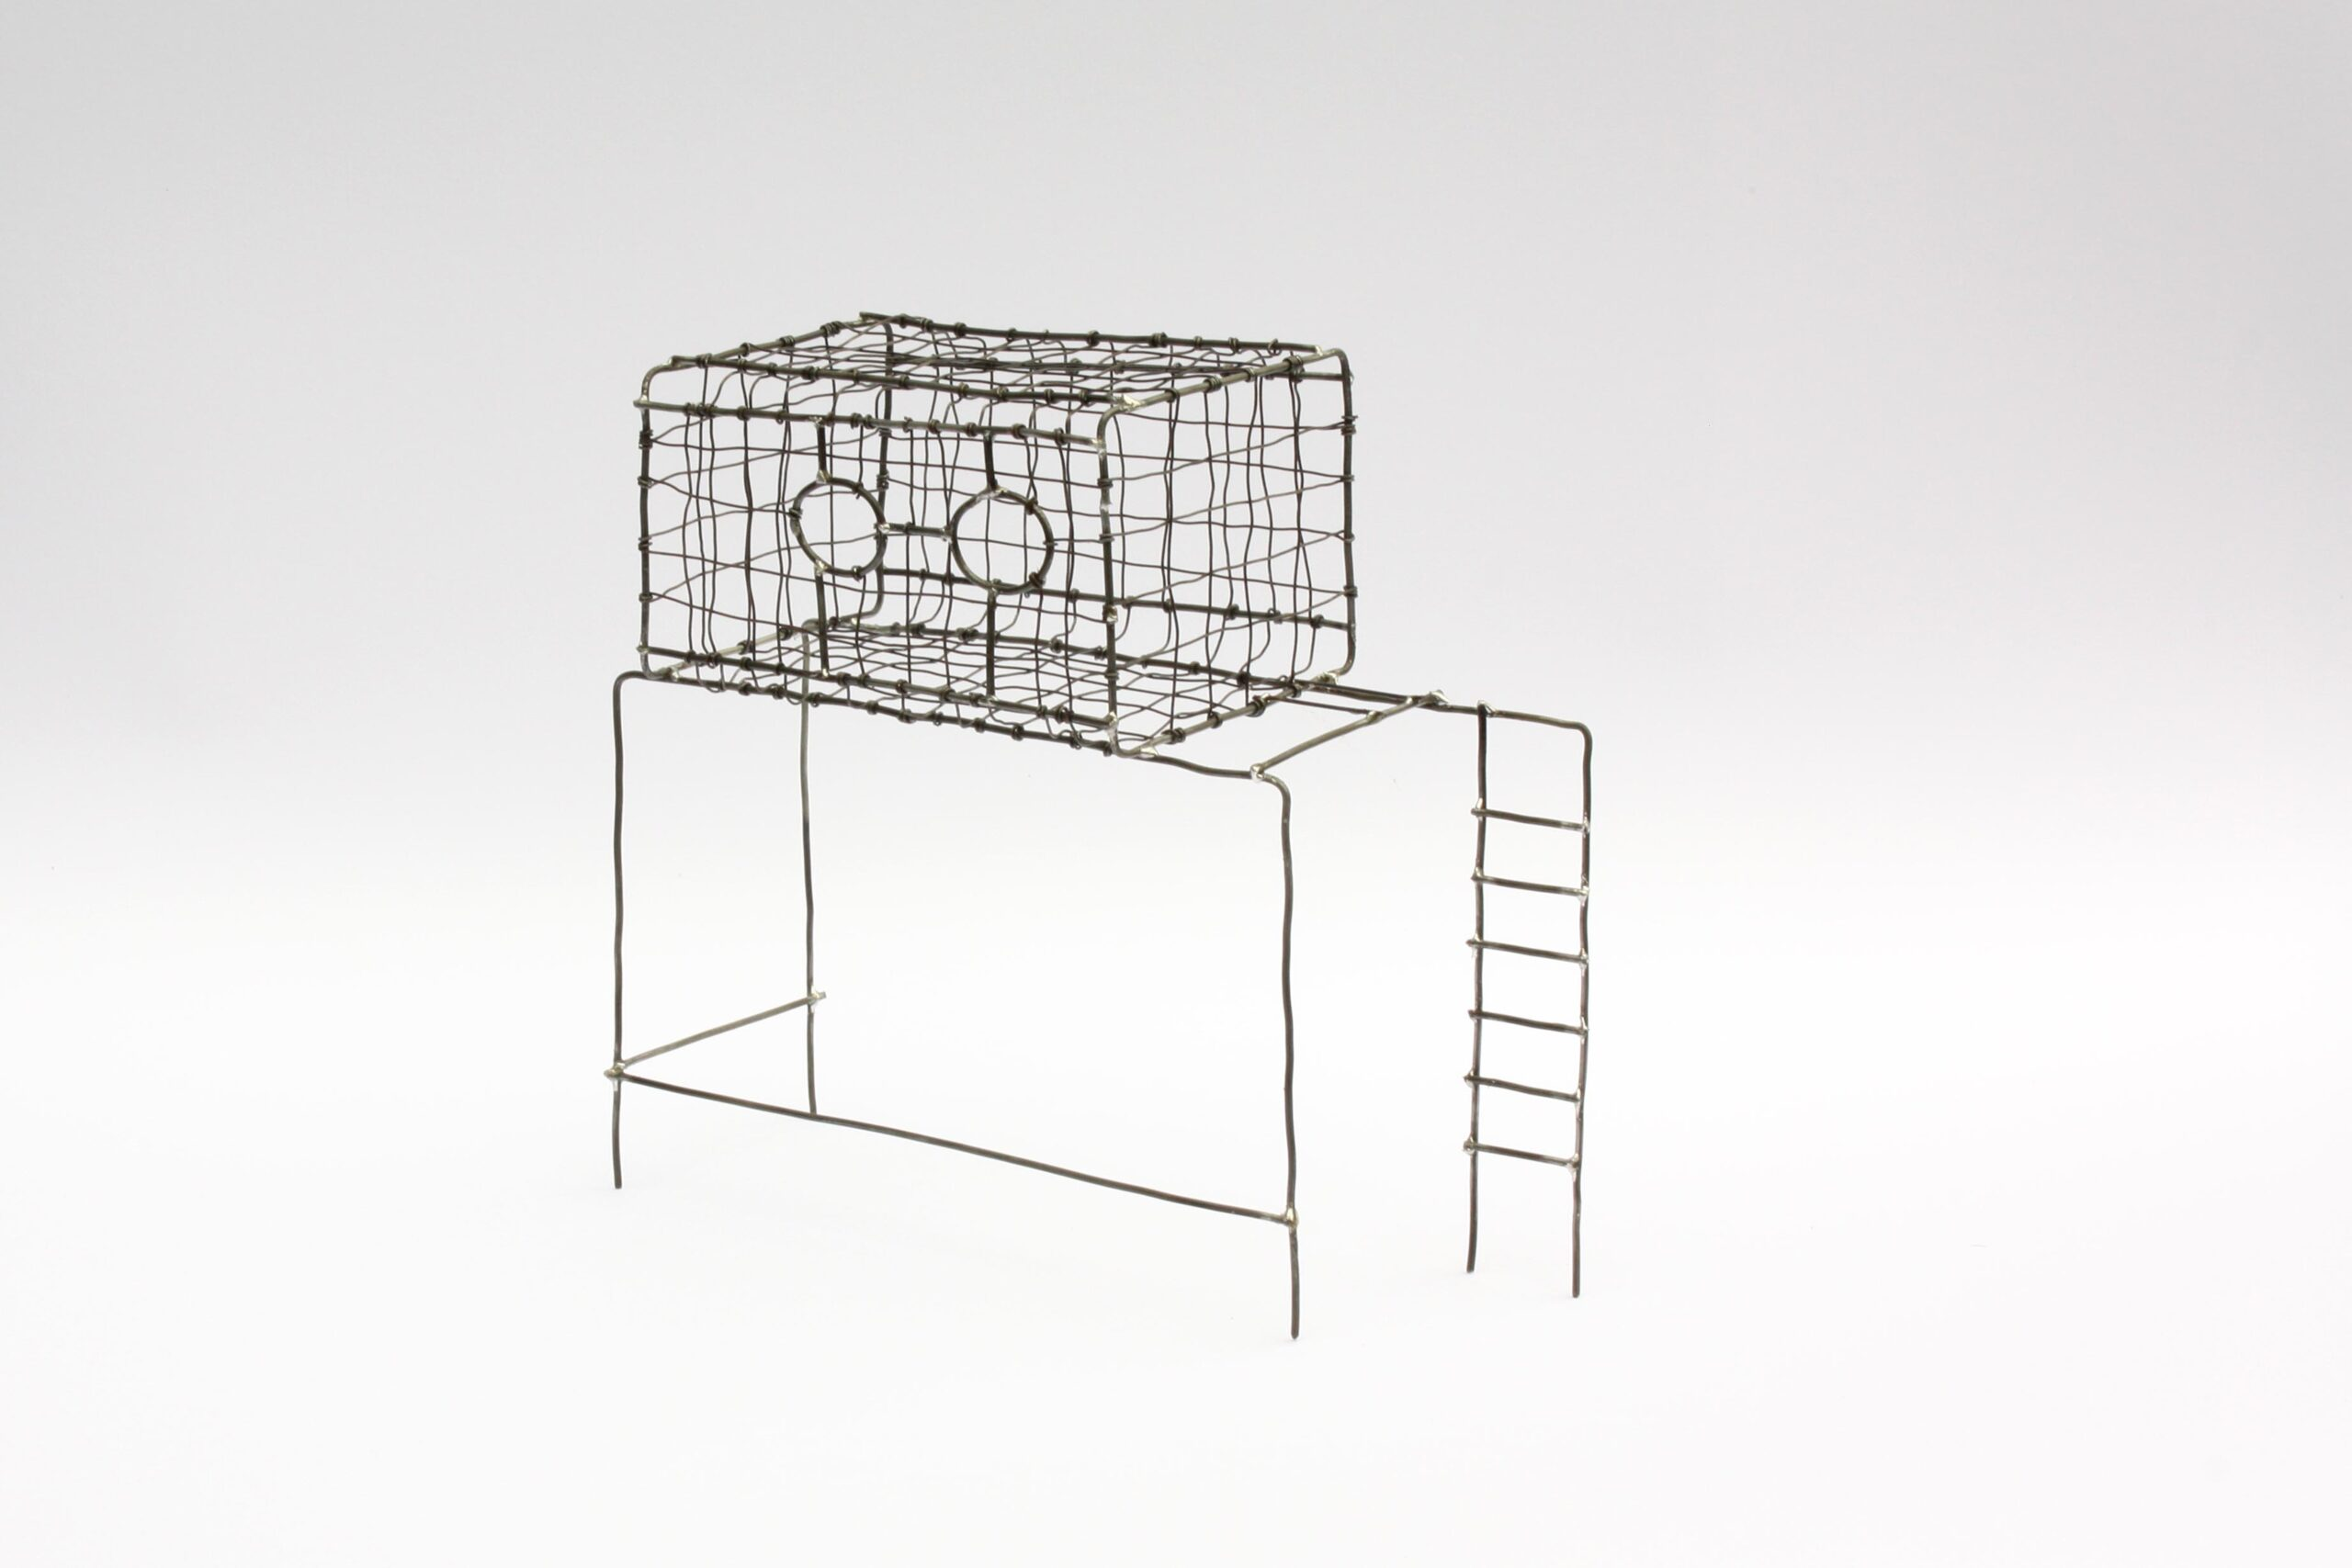 Cages Detail